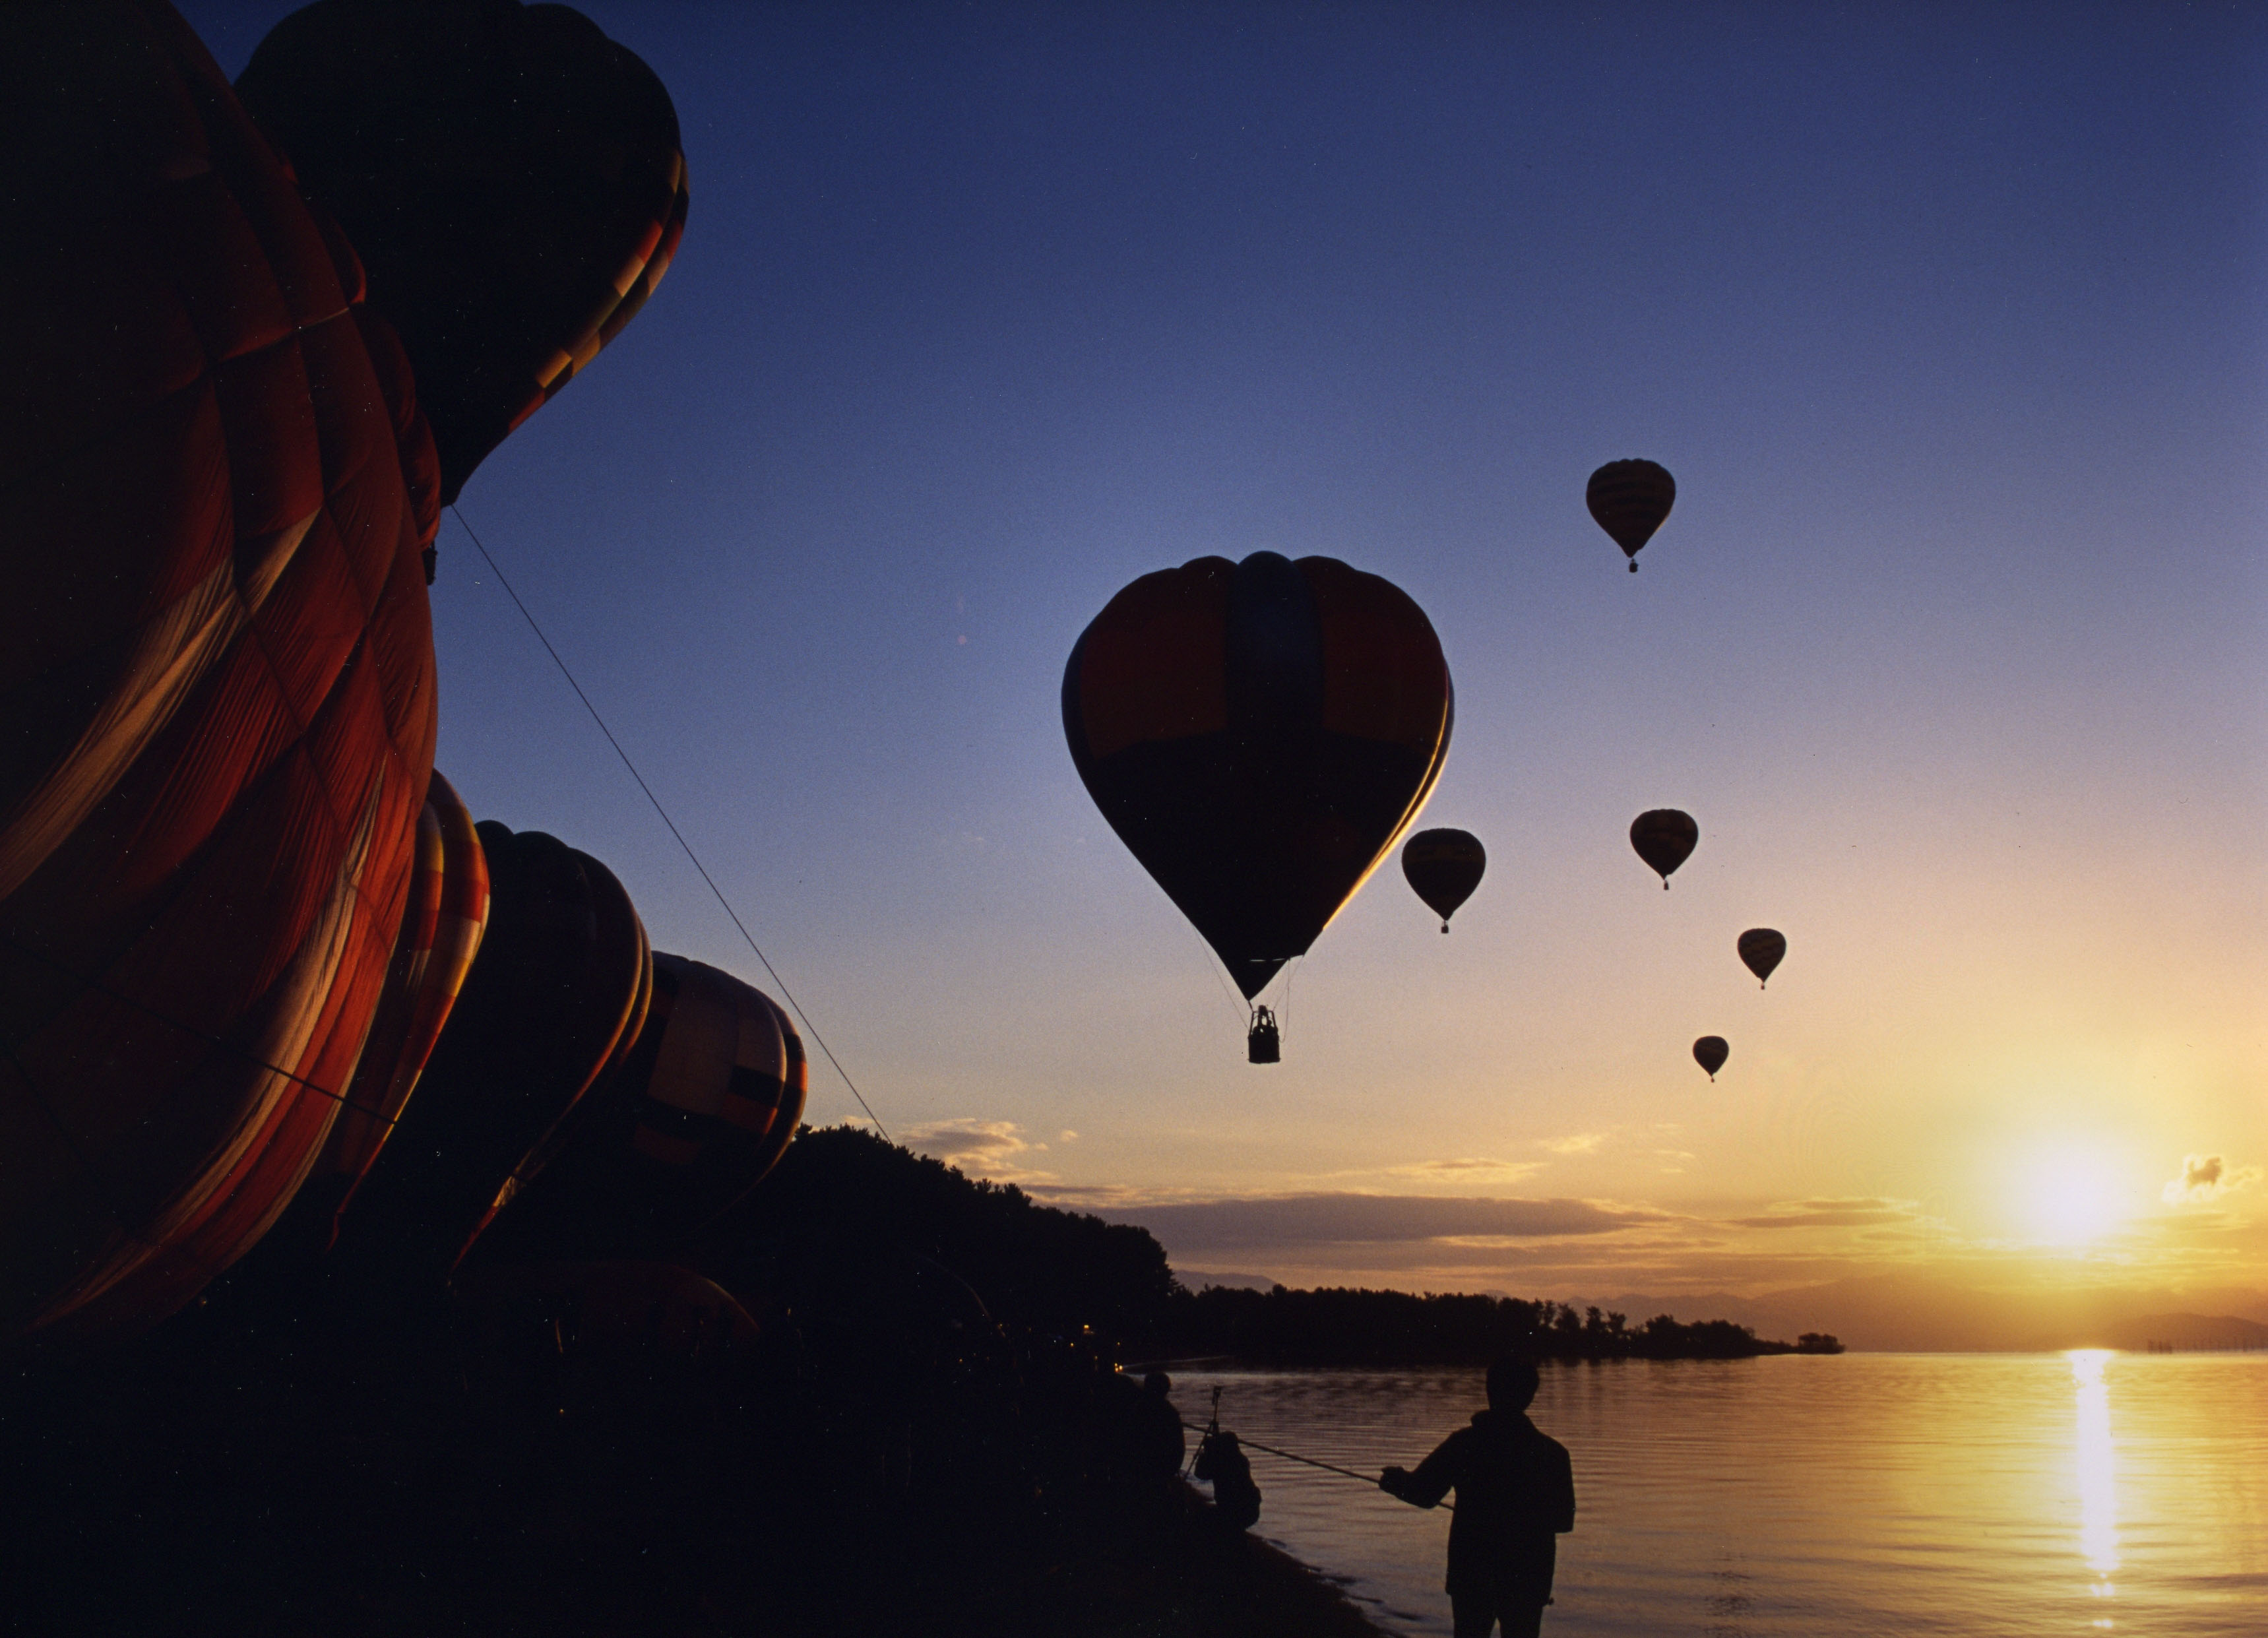 Floating in the wind: The Lake Biwa Hot Air Balloon Crossing promises some spectacular vistas.